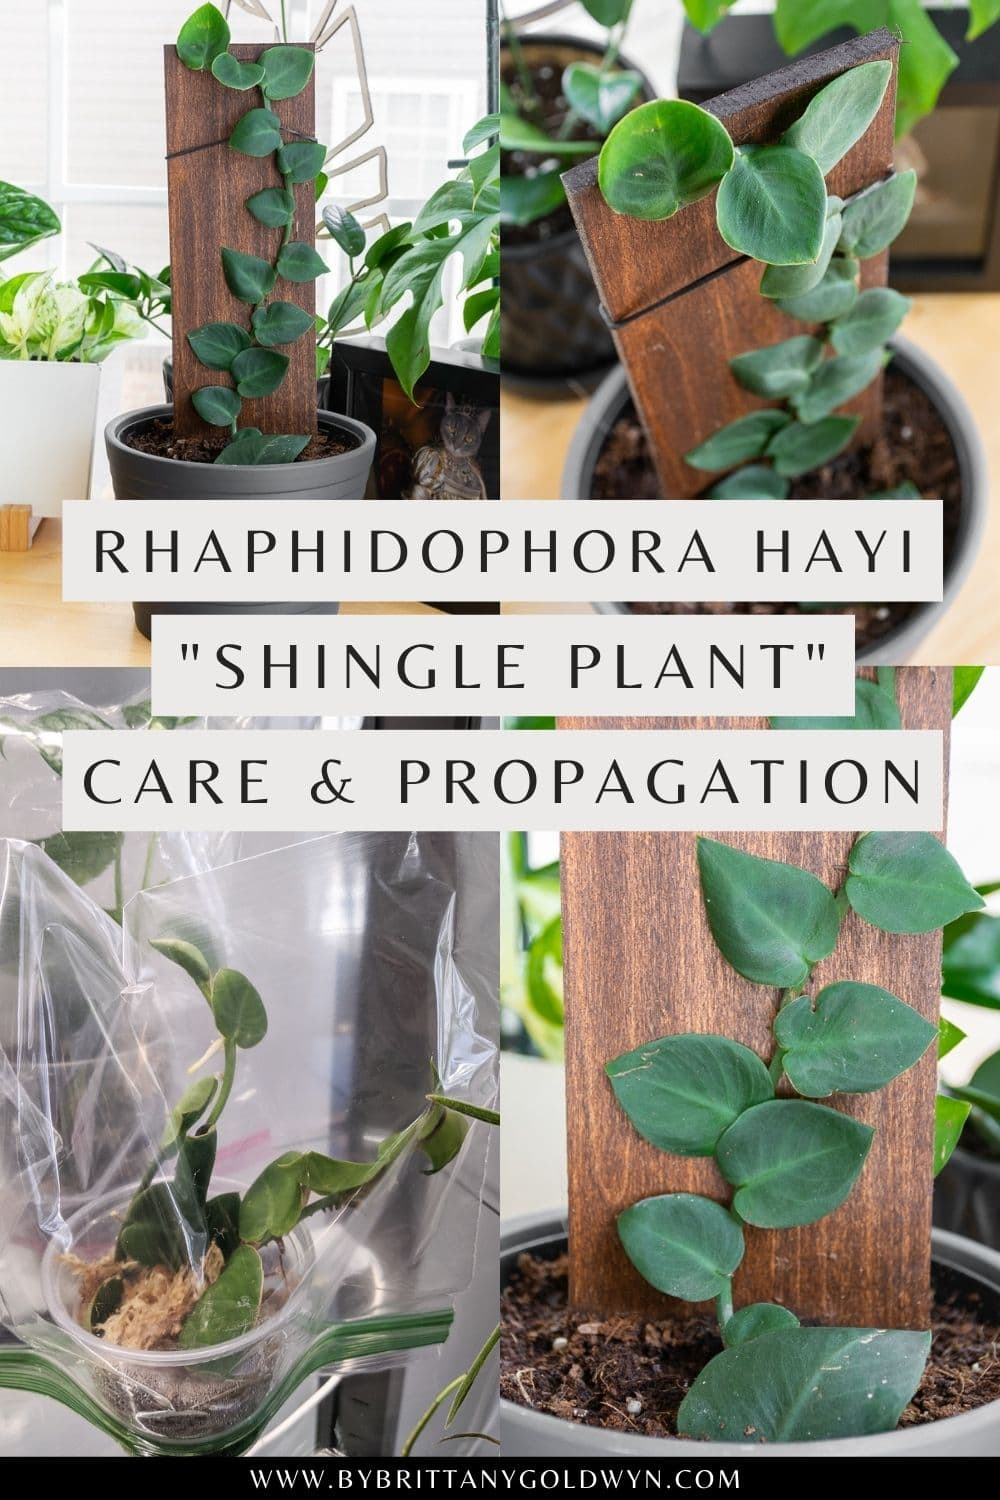 pinnable graphic with images of a Rhaphidophora Hayi plant and text overlay about how to care for and propagate it